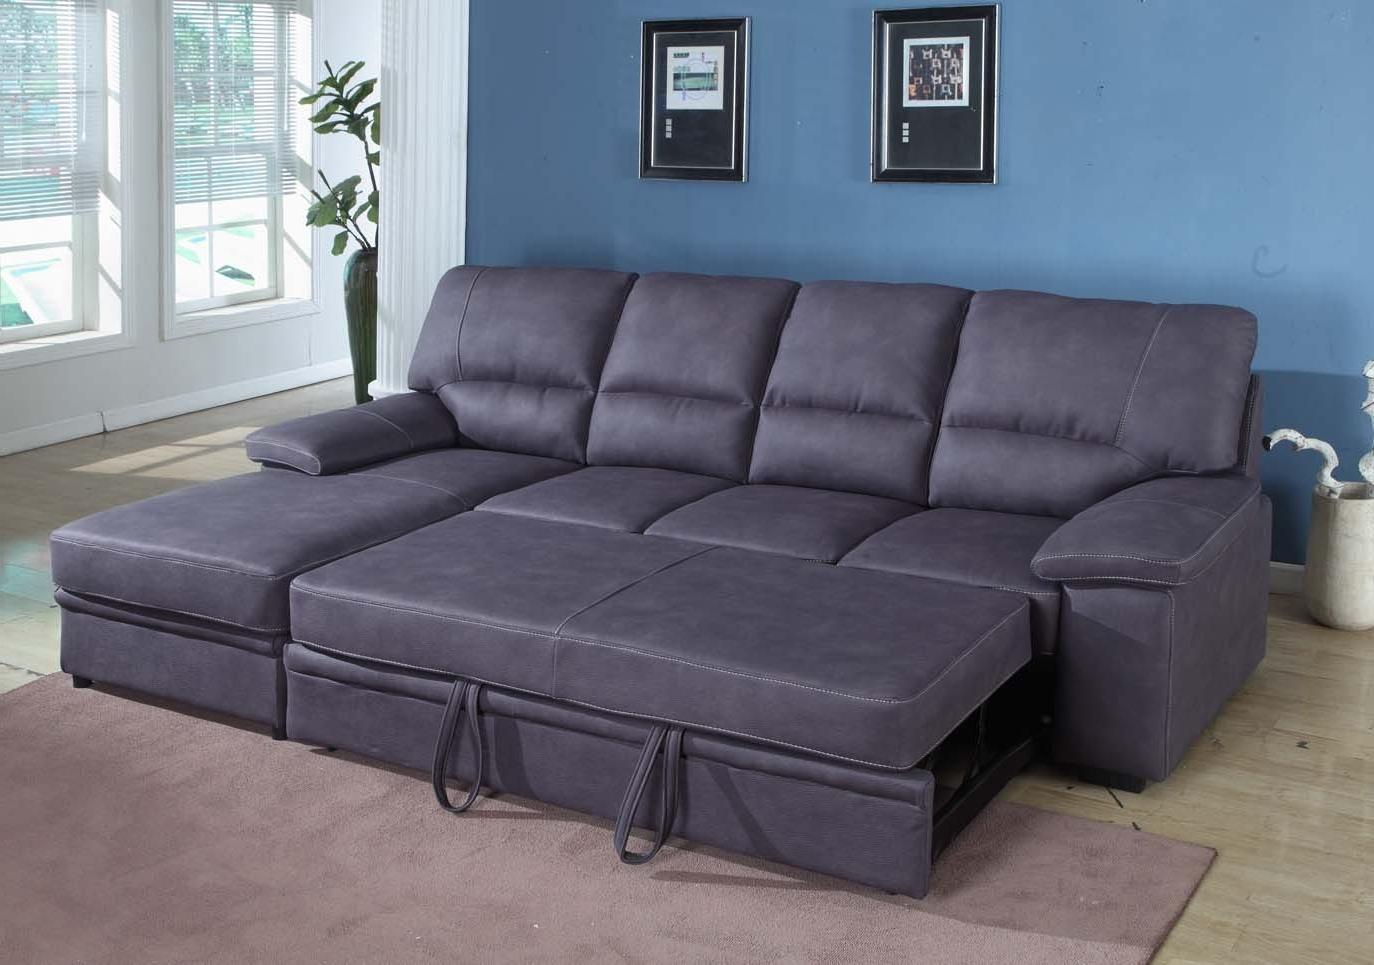 2017 Sectional Sofas In Houston Tx For Grey Sleeper Sectional Sofa (View 7 of 15)